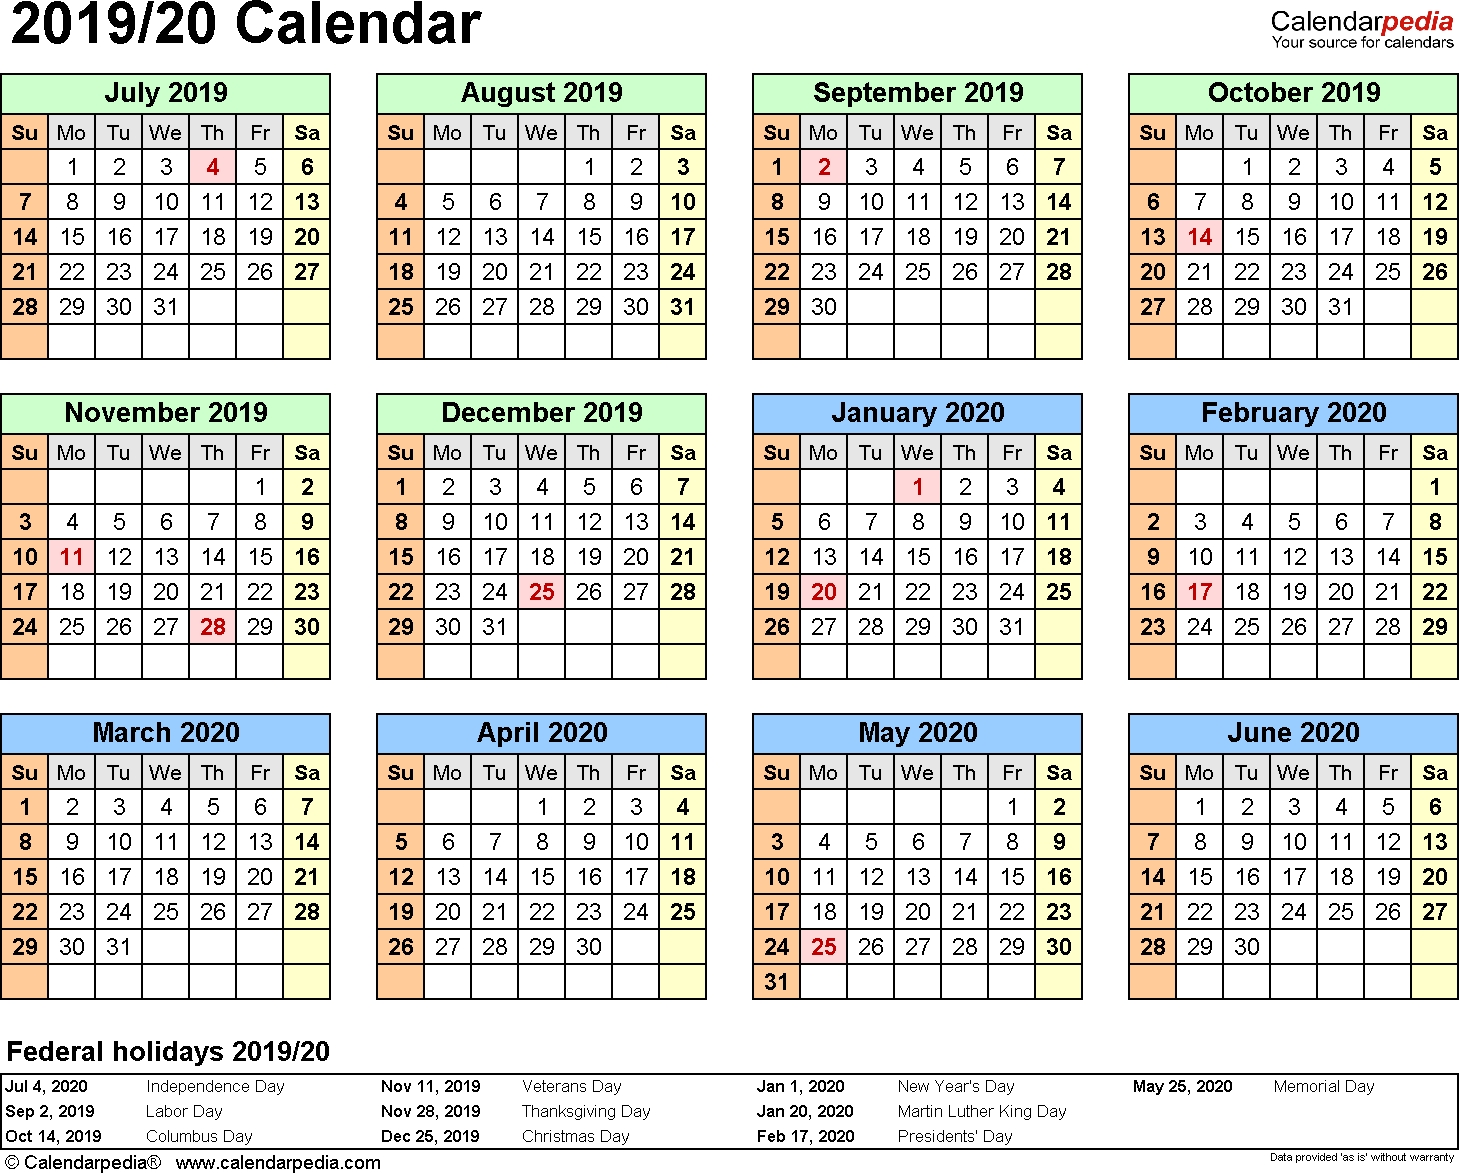 Split Year Calendars 2019/2020 (July To June) - Excel Templates